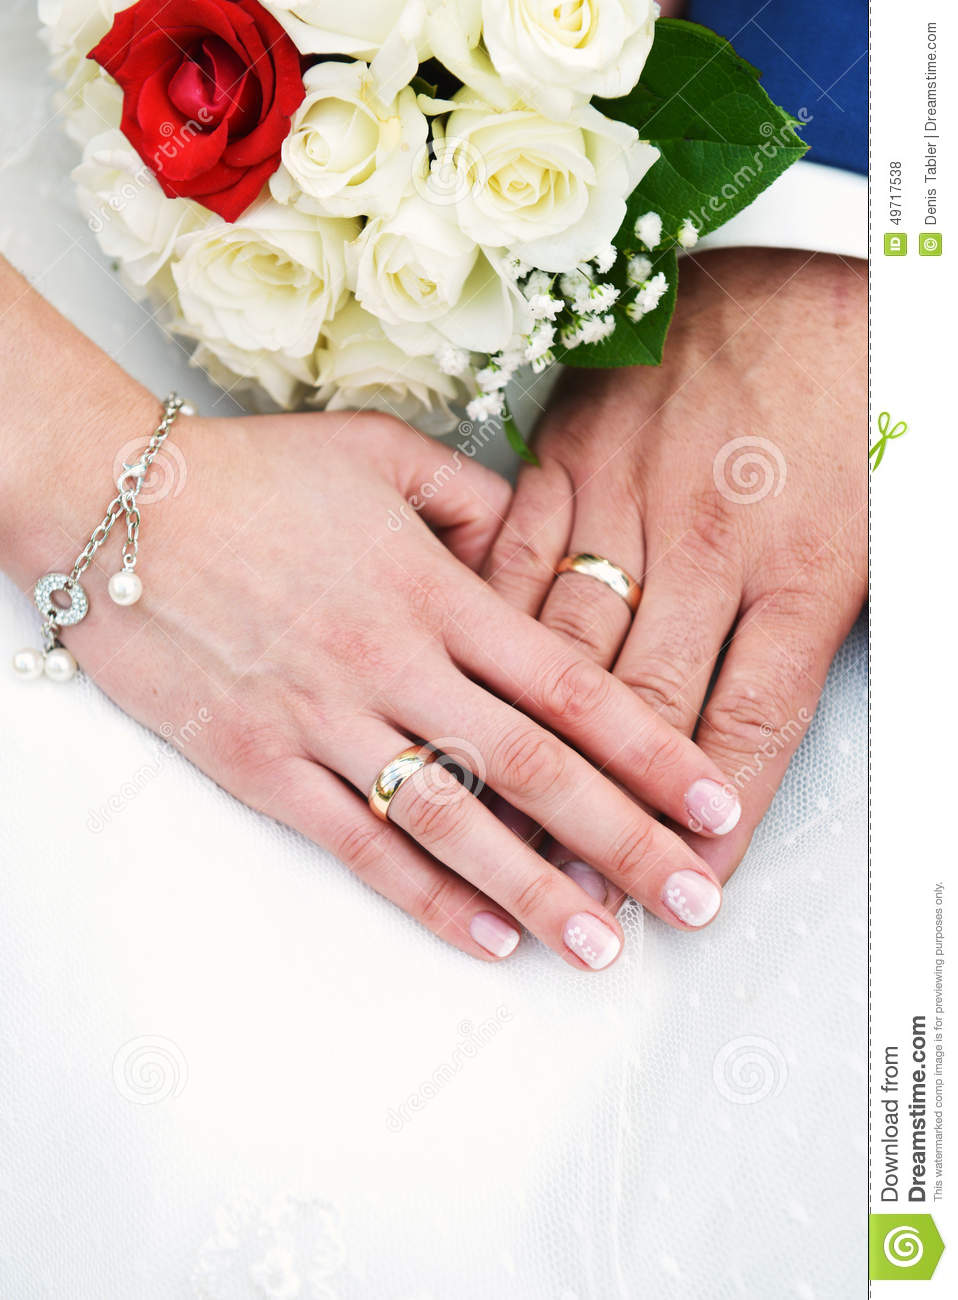 Image Result For Wedding Rings Hands